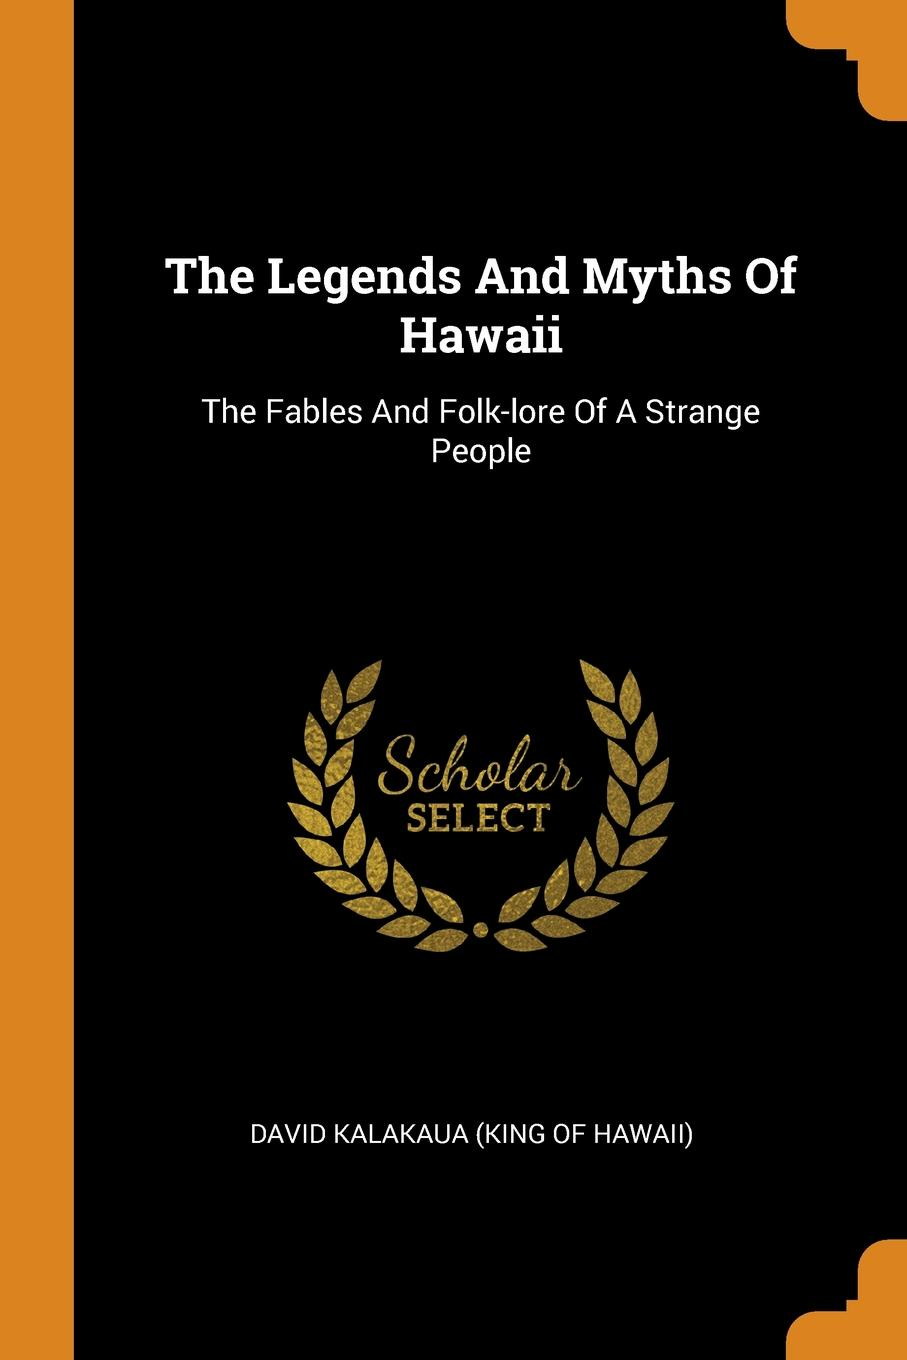 The Legends And Myths Of Hawaii. The Fables And Folk-lore Of A Strange People